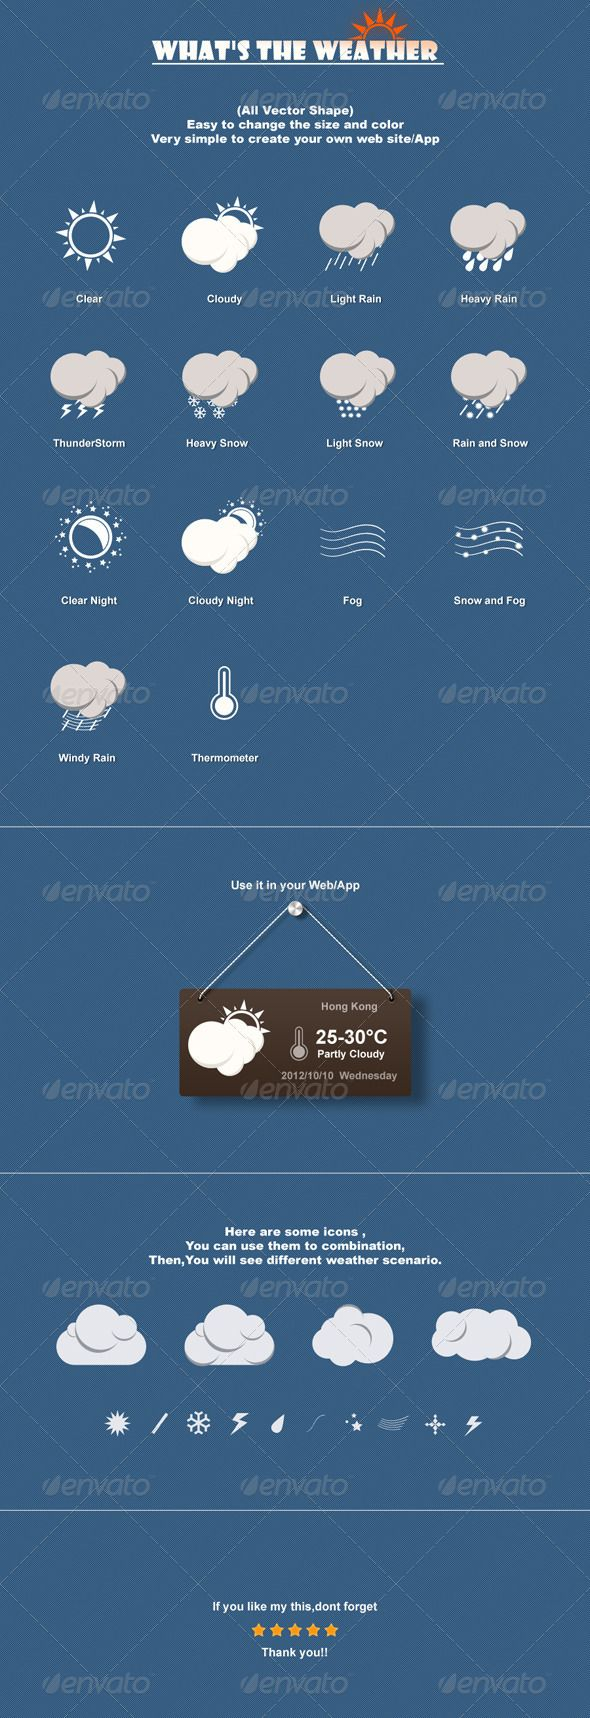 This File One psd file 14 weather commonly used iconNamed